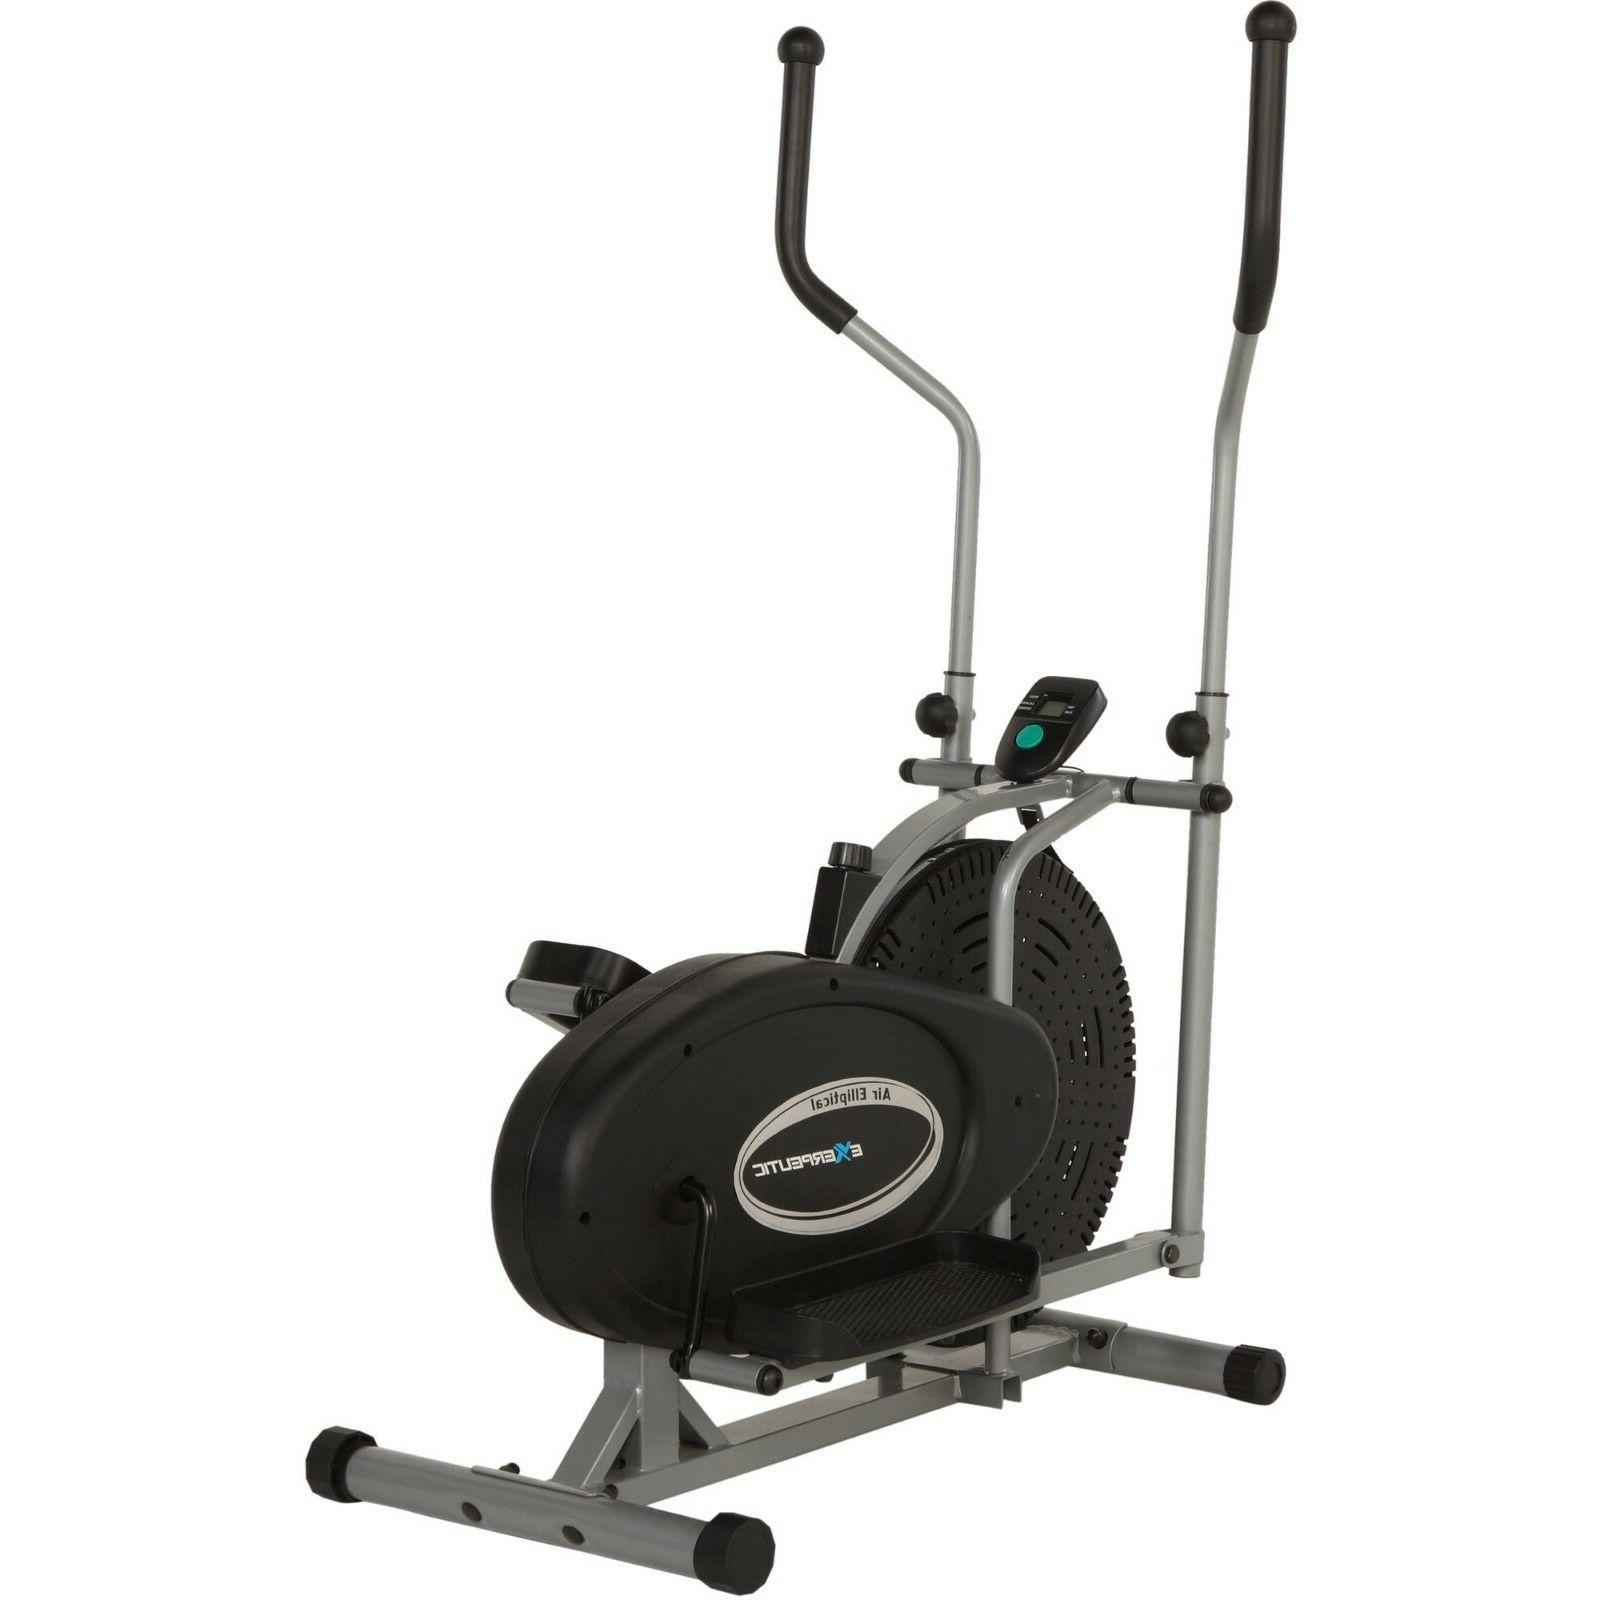 Elliptical Bike 2 IN 1 Cross Trainer Exercise Fitness Machin